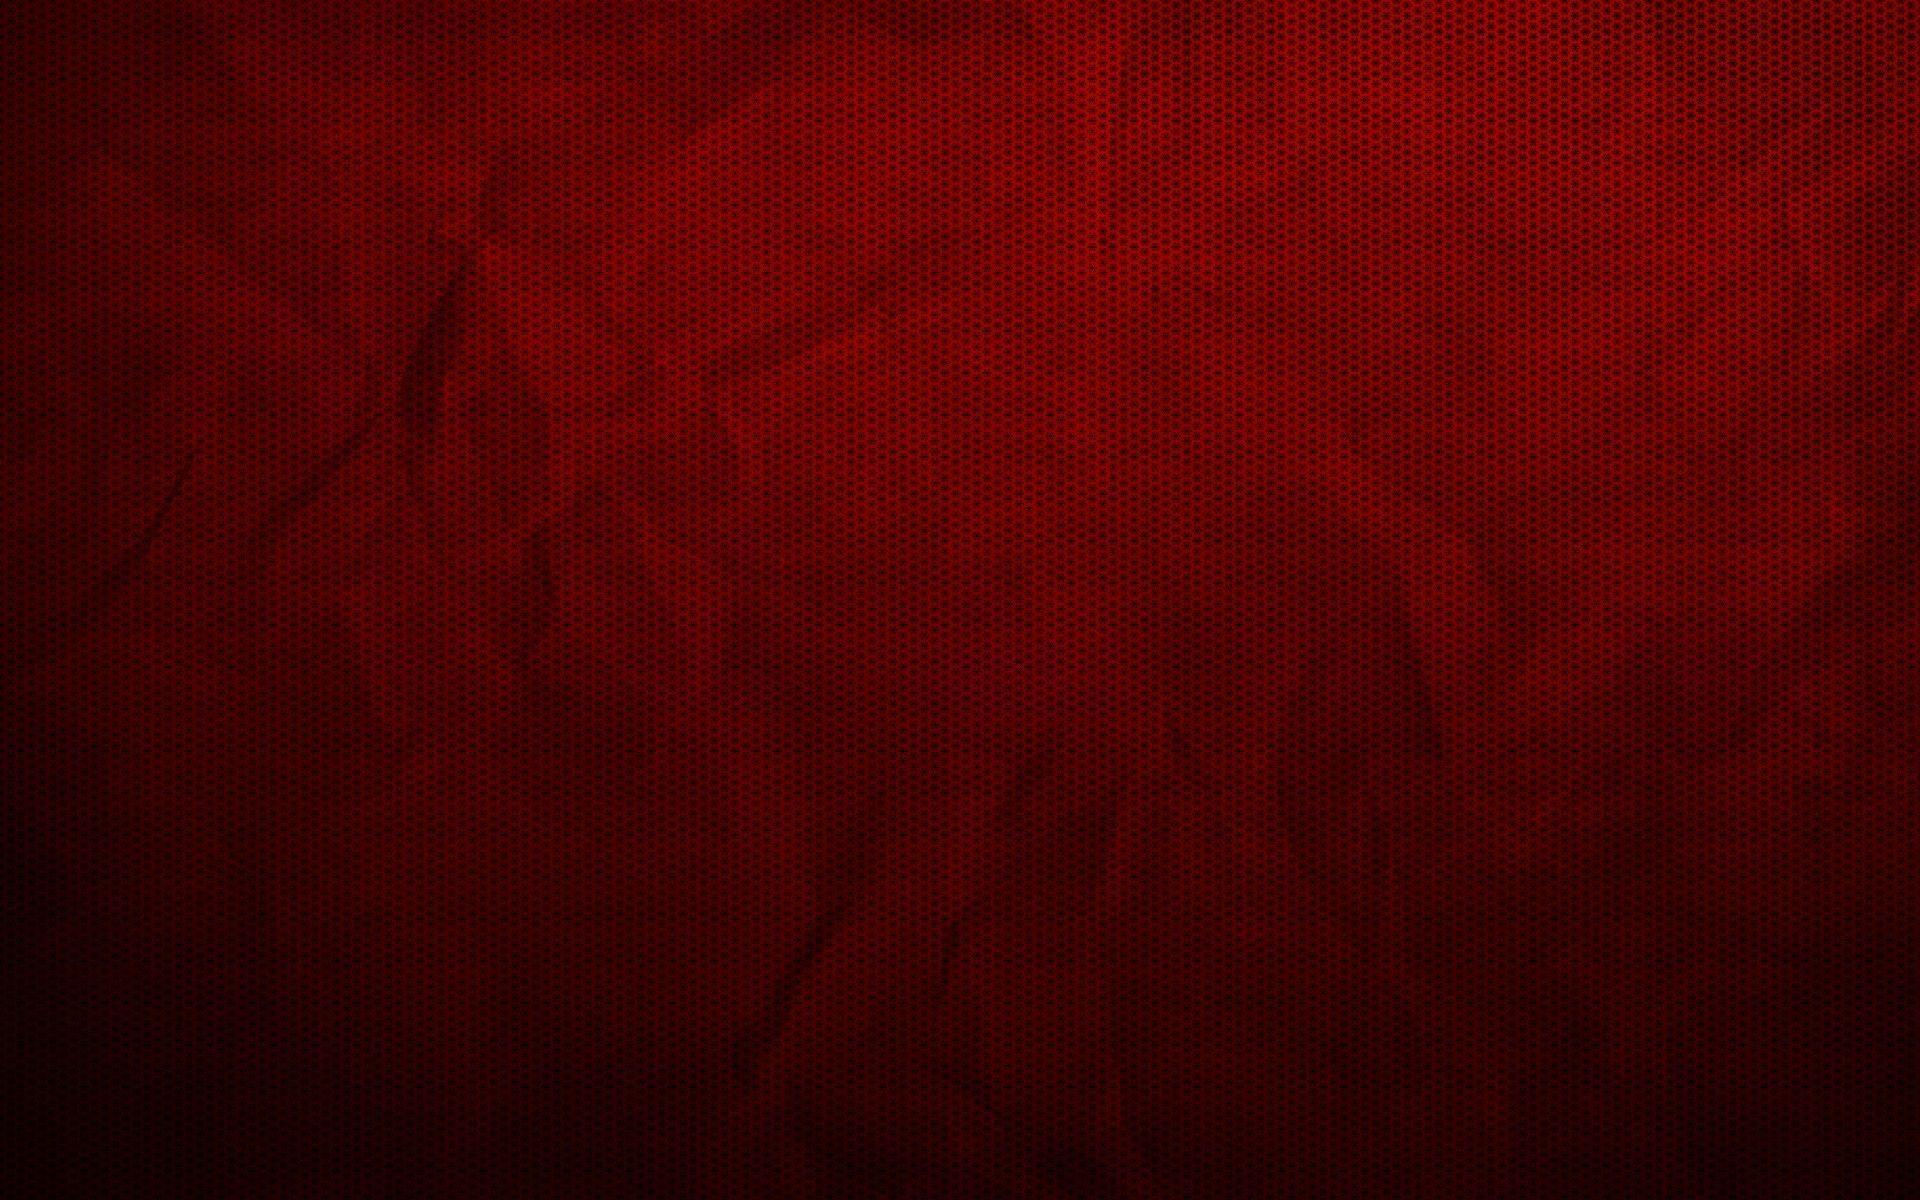 maroon color backgrounds wallpaper cave